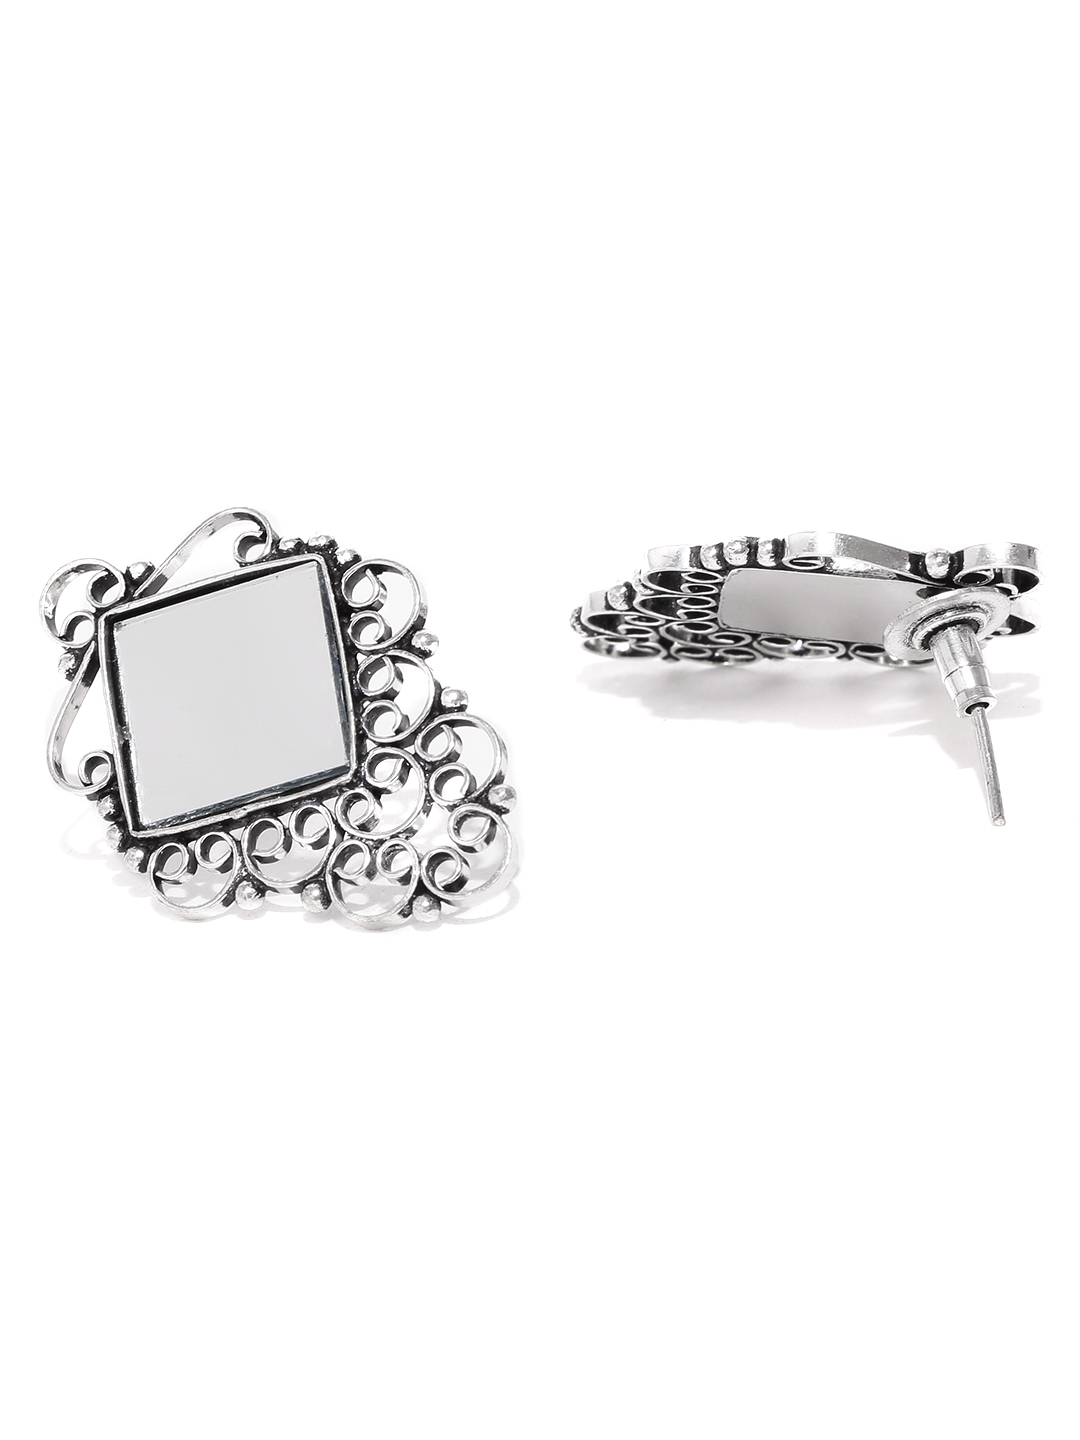 141afeff8 Buy FIROZA Oxidised Silver Toned Handcrafted Mirror Work Studs ...